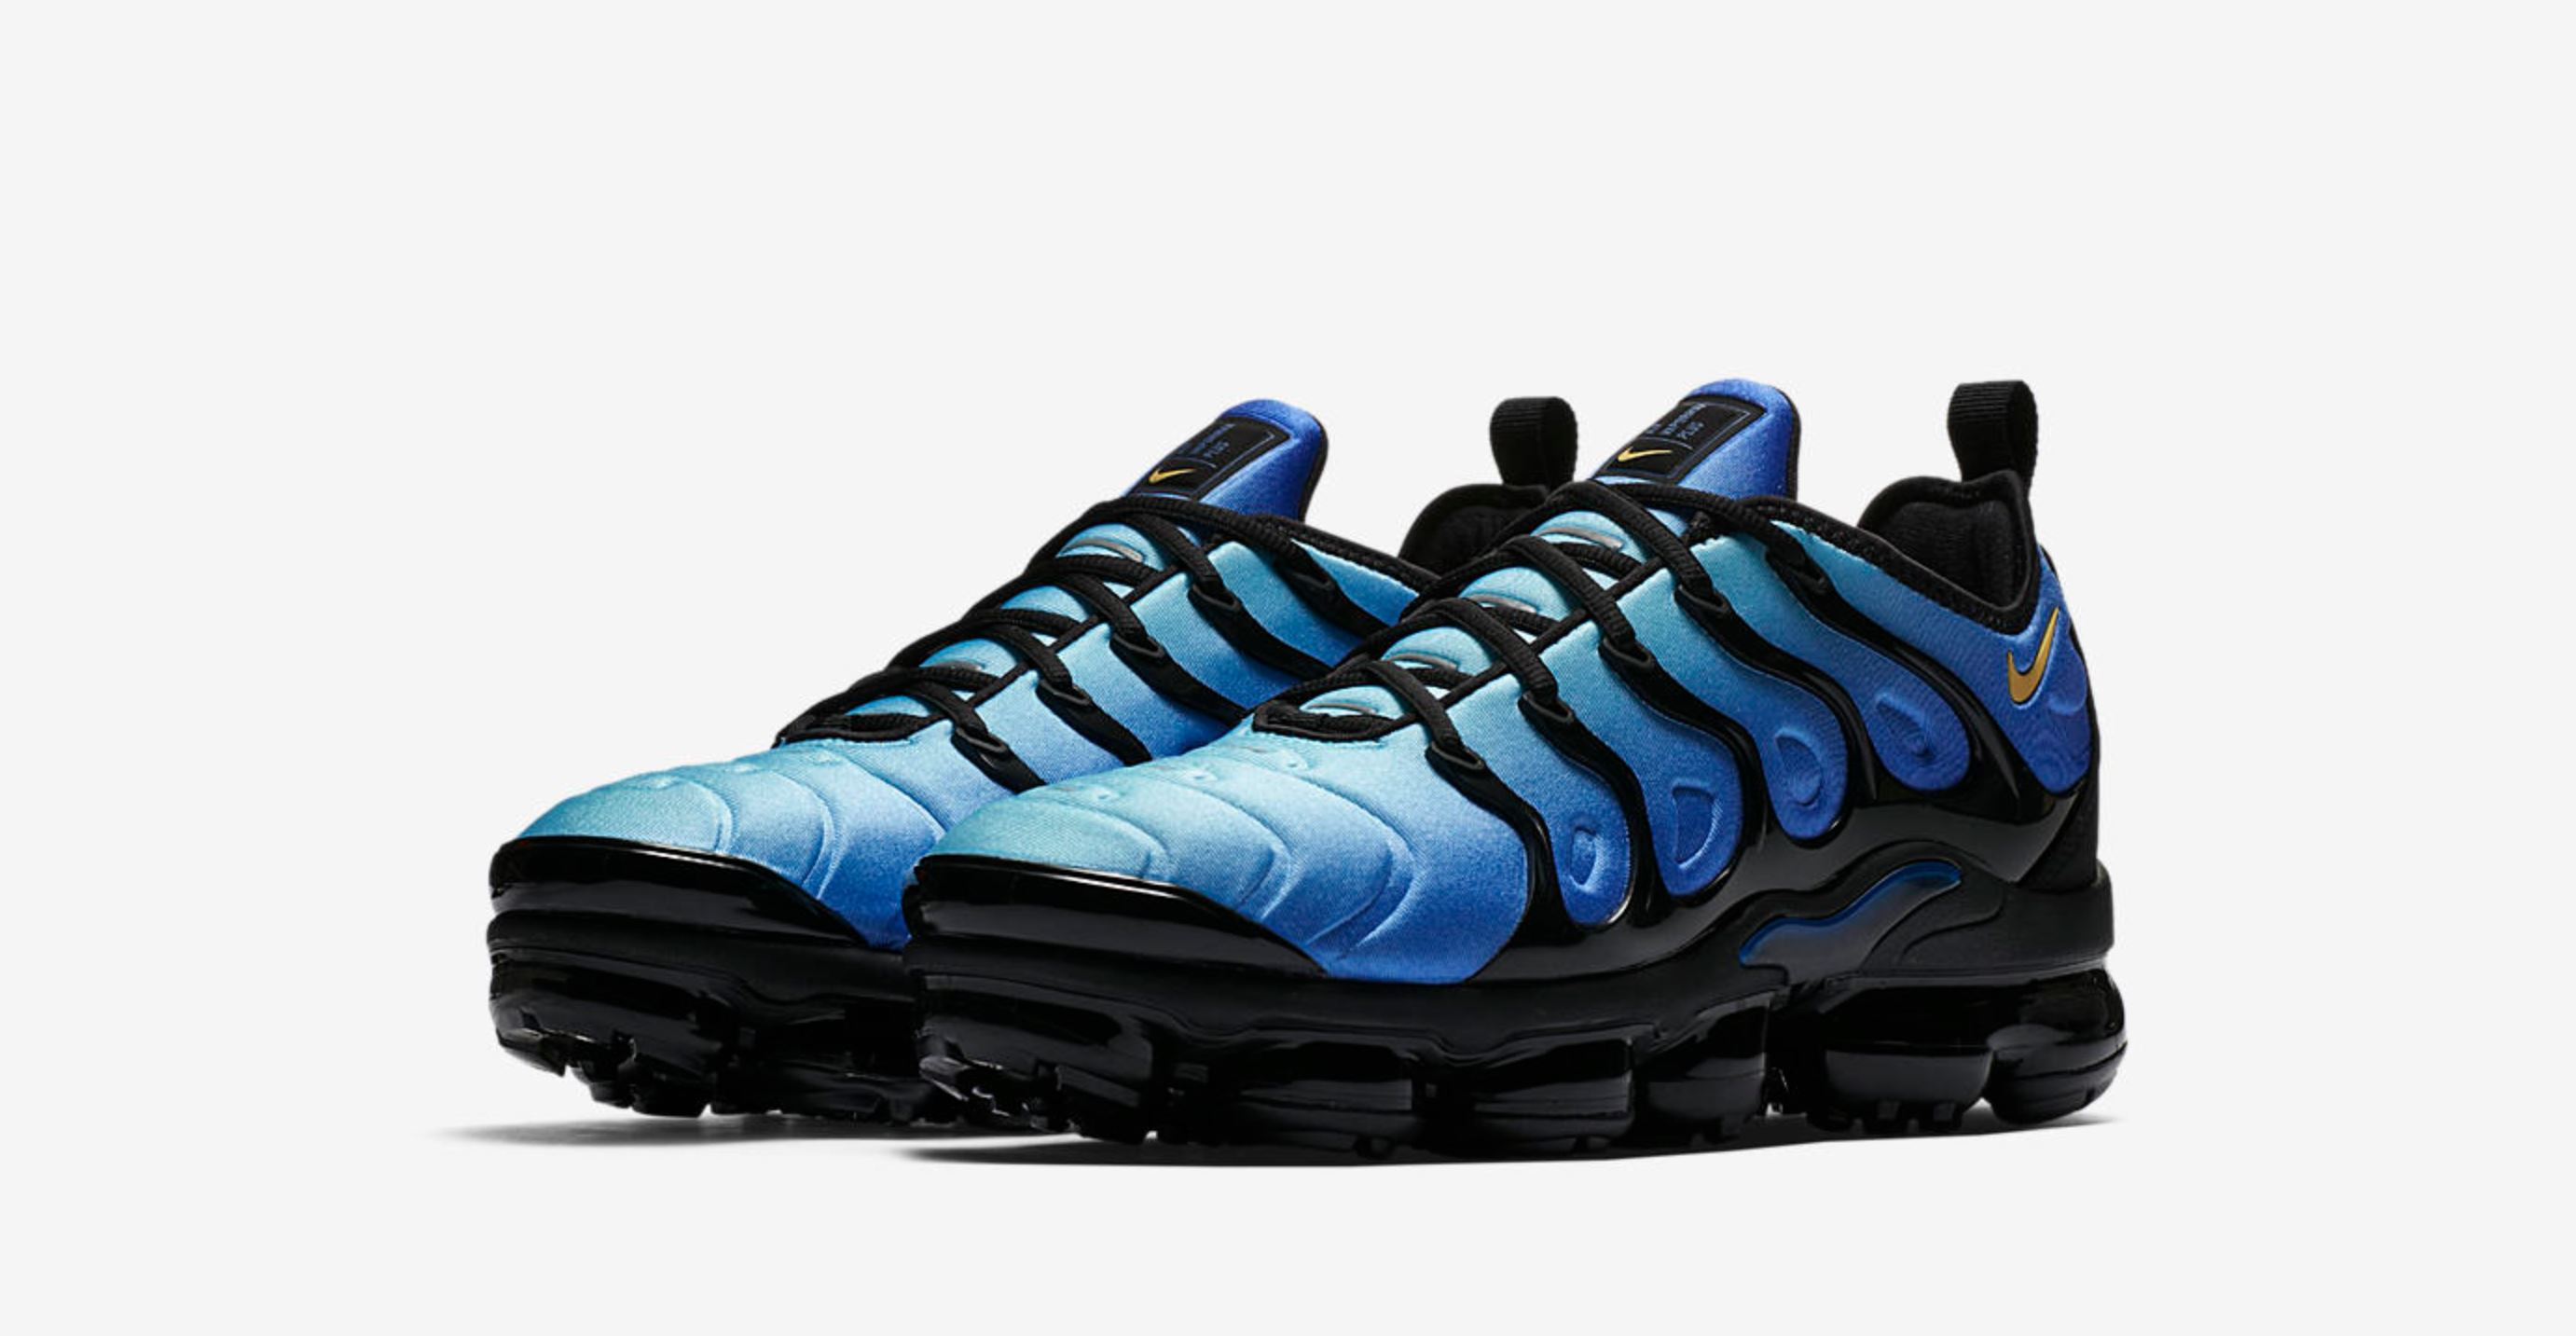 newest 2df2d c71d1 air max plus Archives - WearTesters